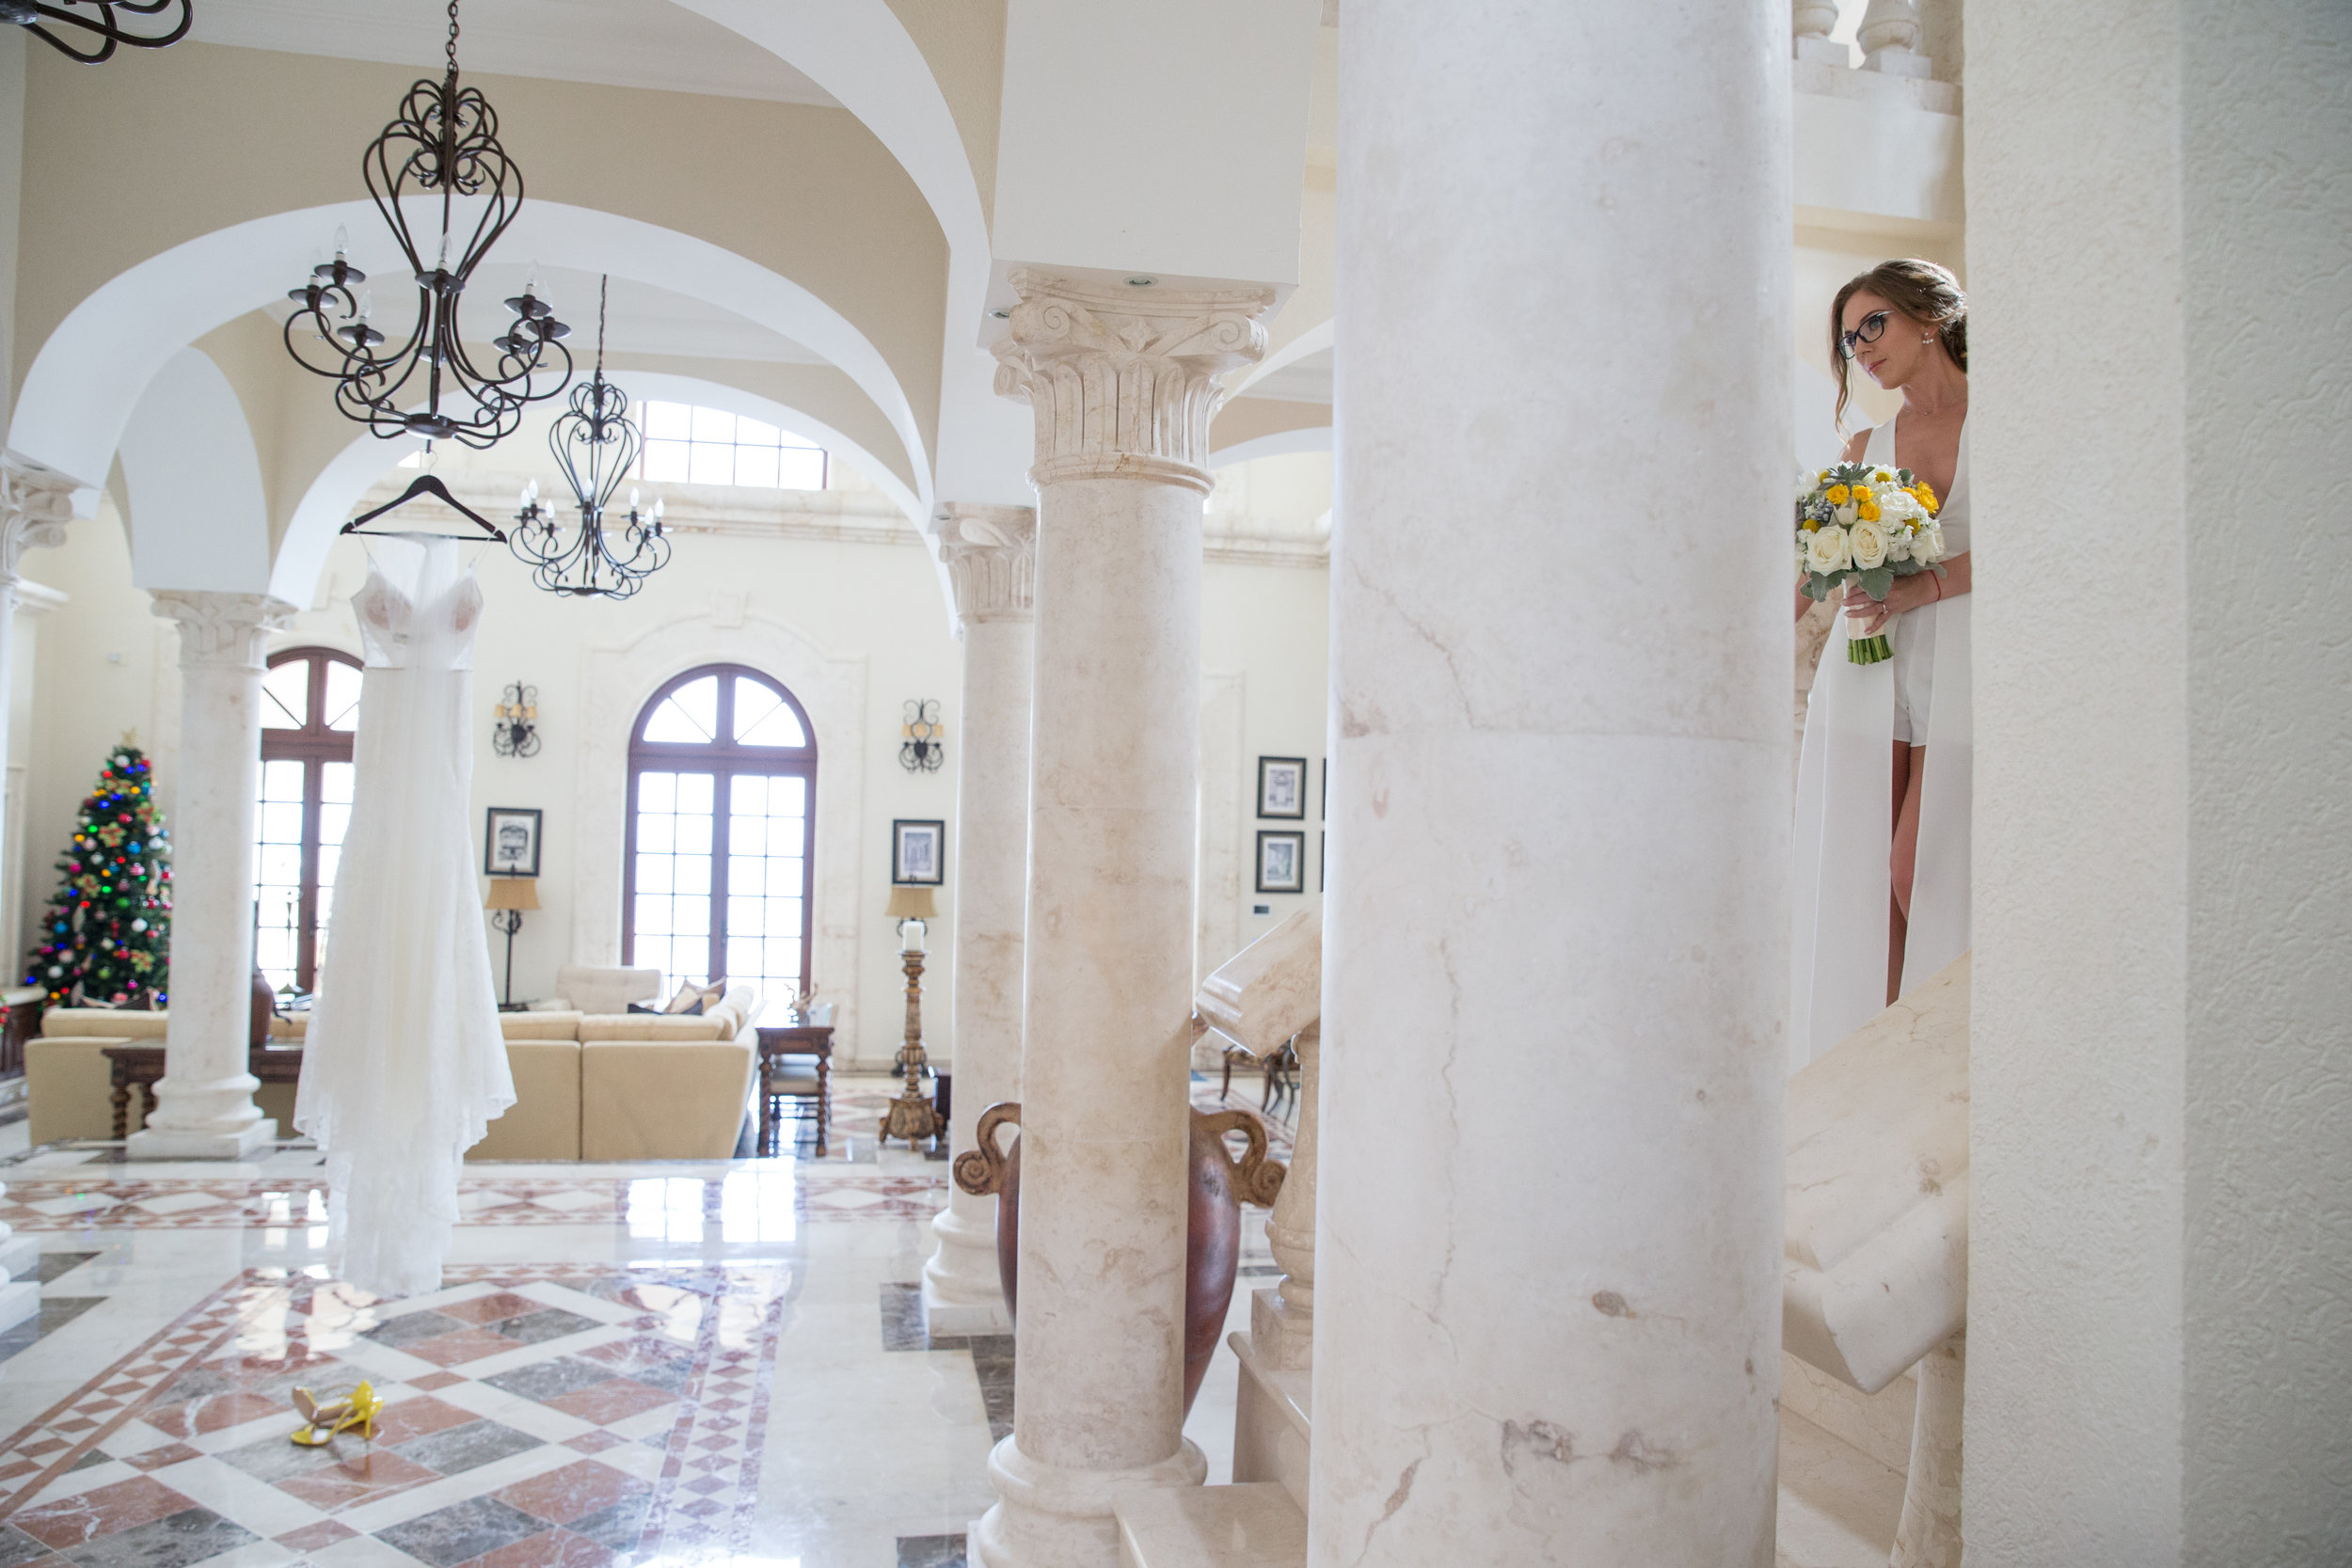 destination-wedding-venue-villa-la-joya-05.jpg